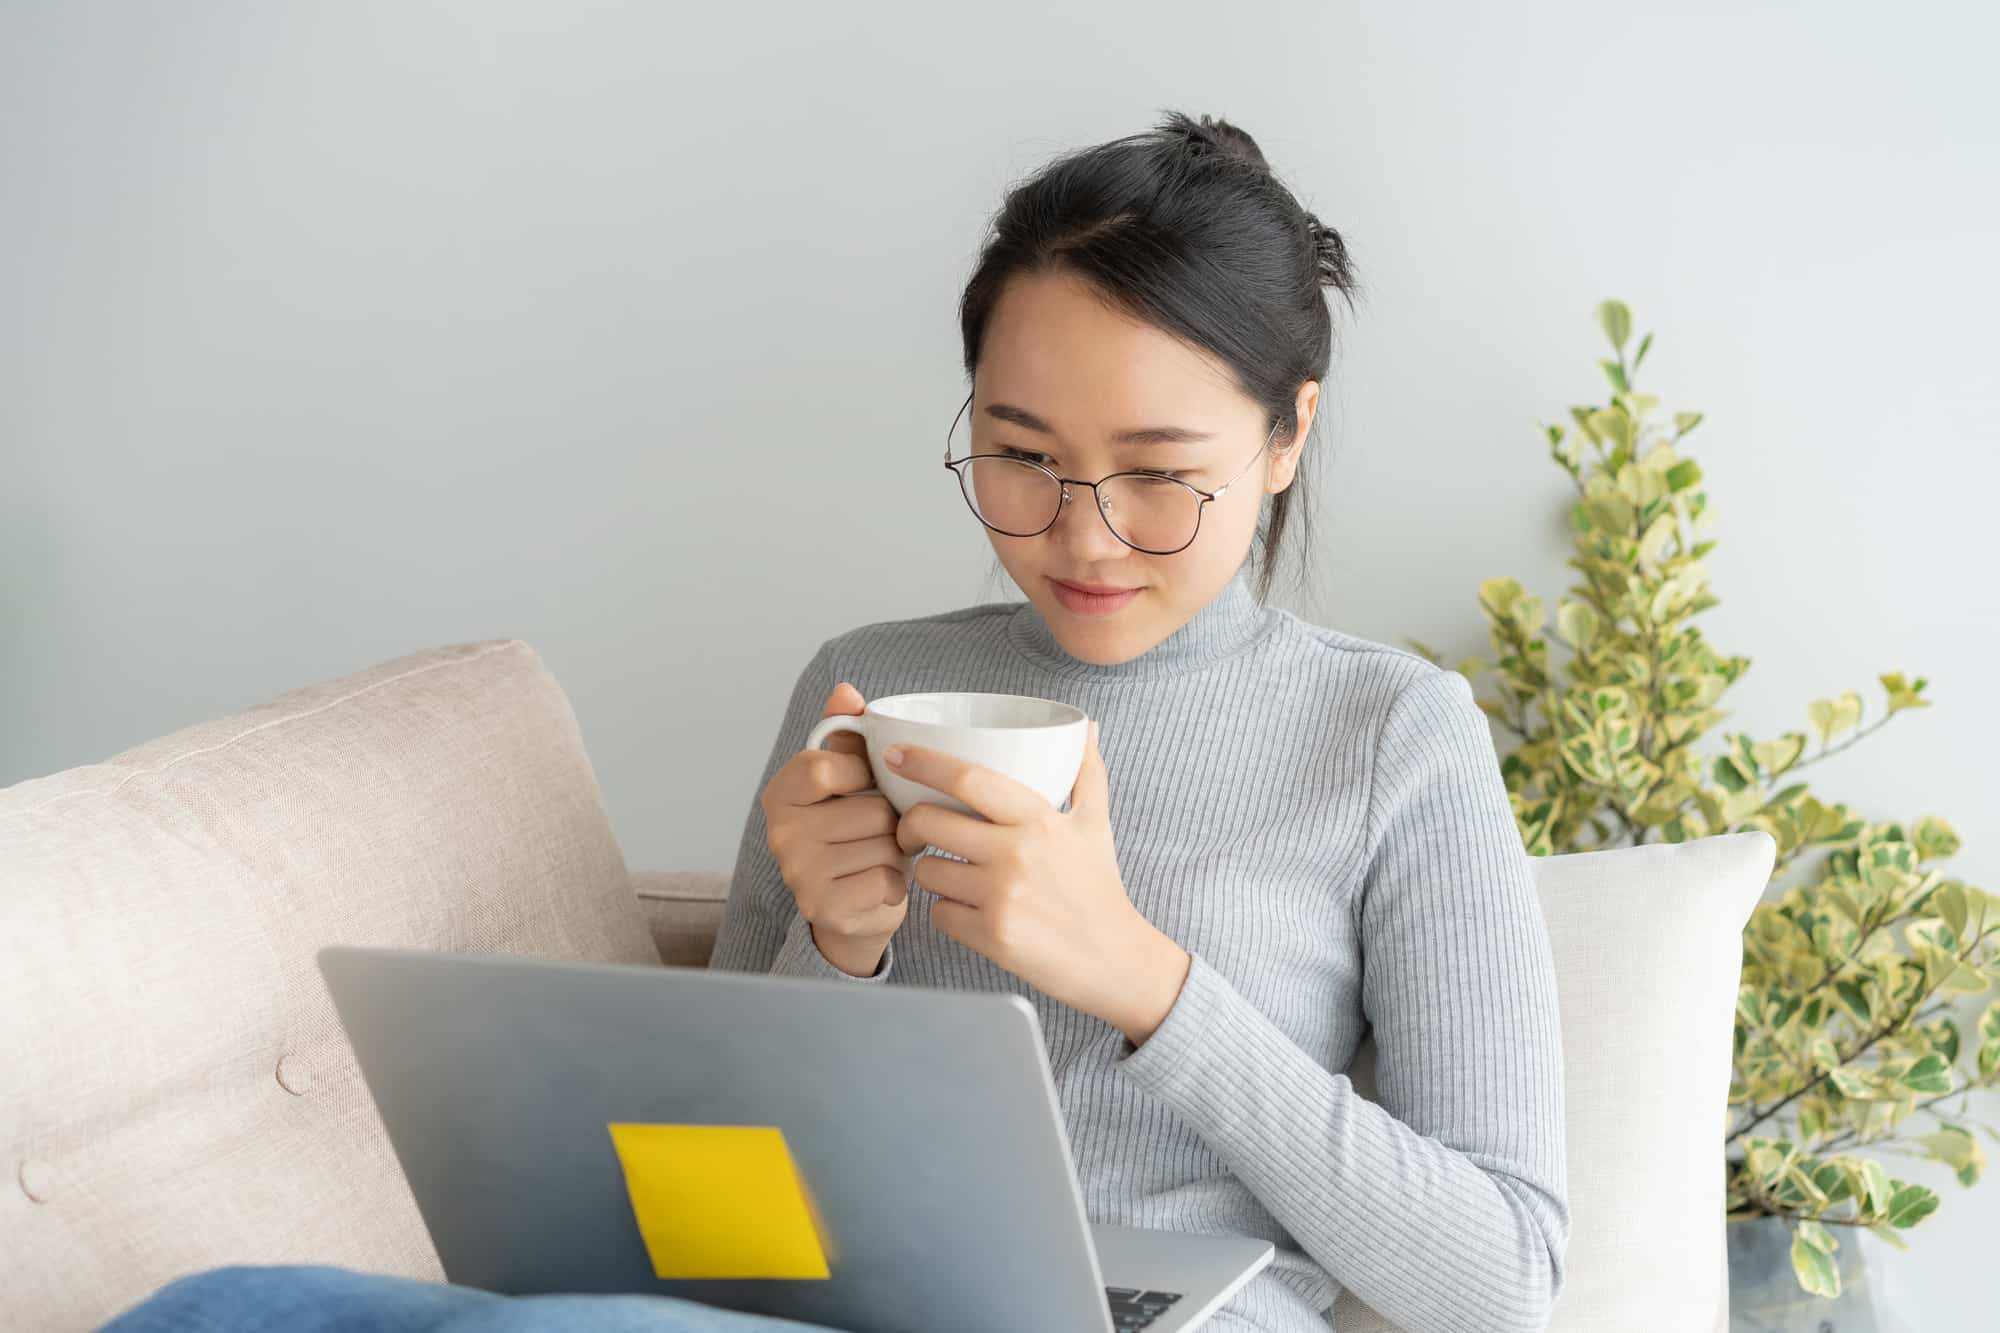 woman with glasses holding a cup reading on her laptop